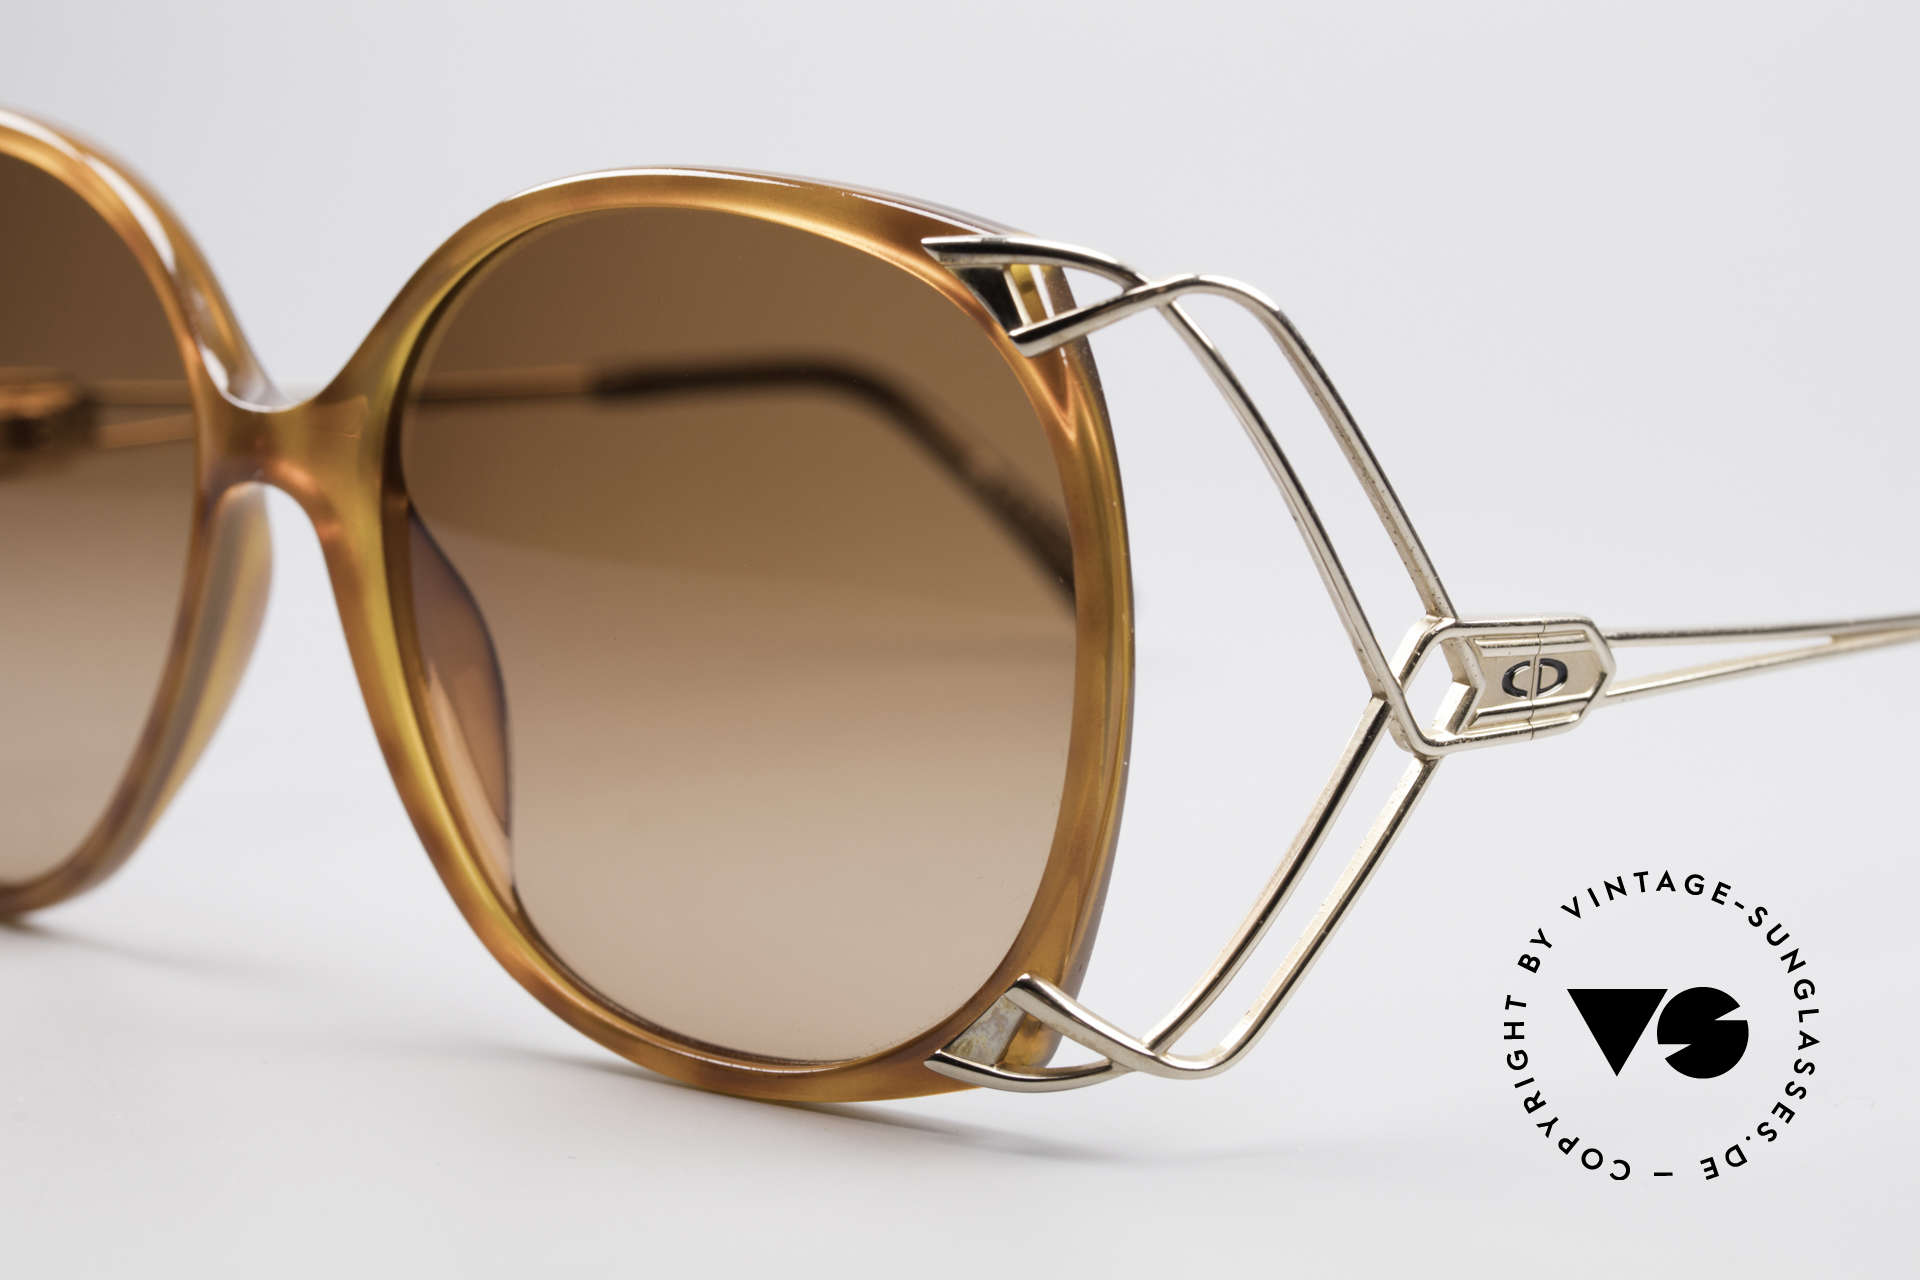 Christian Dior 2616 80's Ladies Sunglasses XXL, unworn rarity in high-end quality (Optyl material), Made for Women